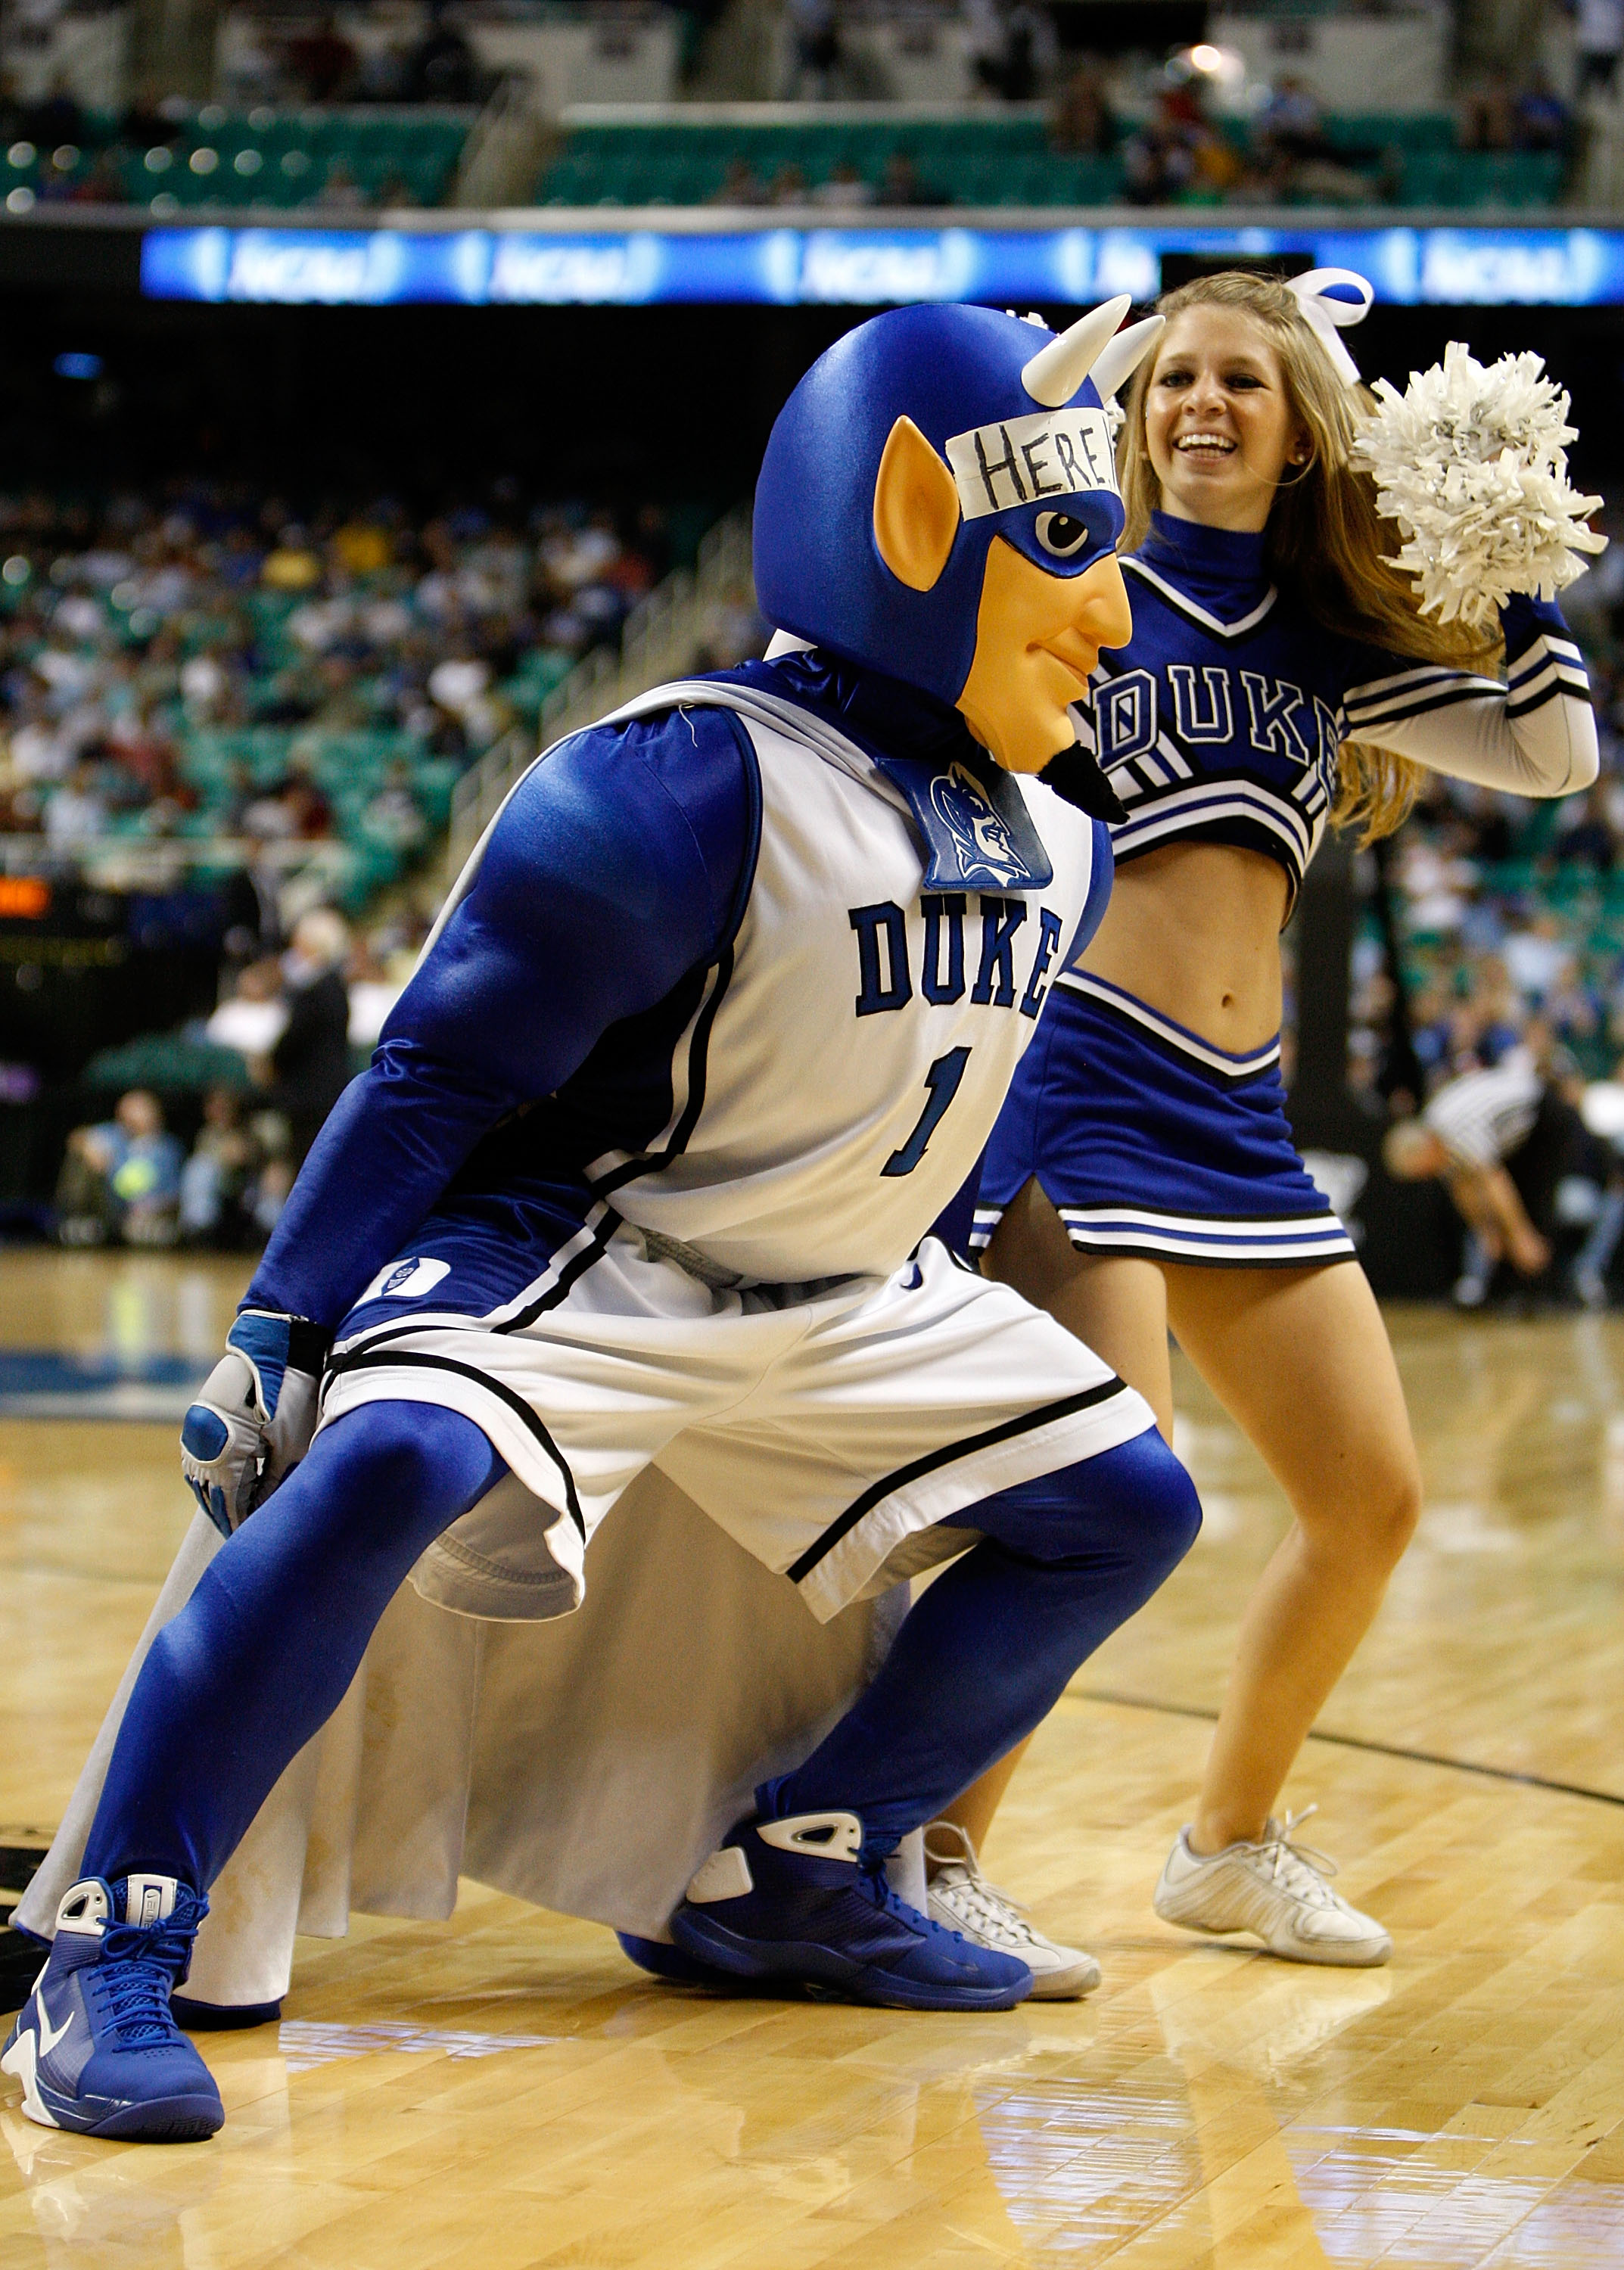 GREENSBORO, NC - MARCH 19:  The Duke Blue Devils mascot cheers against the Binghamton Bearcats during the first round of the NCAA Division I Men's Basketball Tournament at the Greensboro Coliseum on March 19, 2009 in Greensboro, North Carolina.  (Photo by